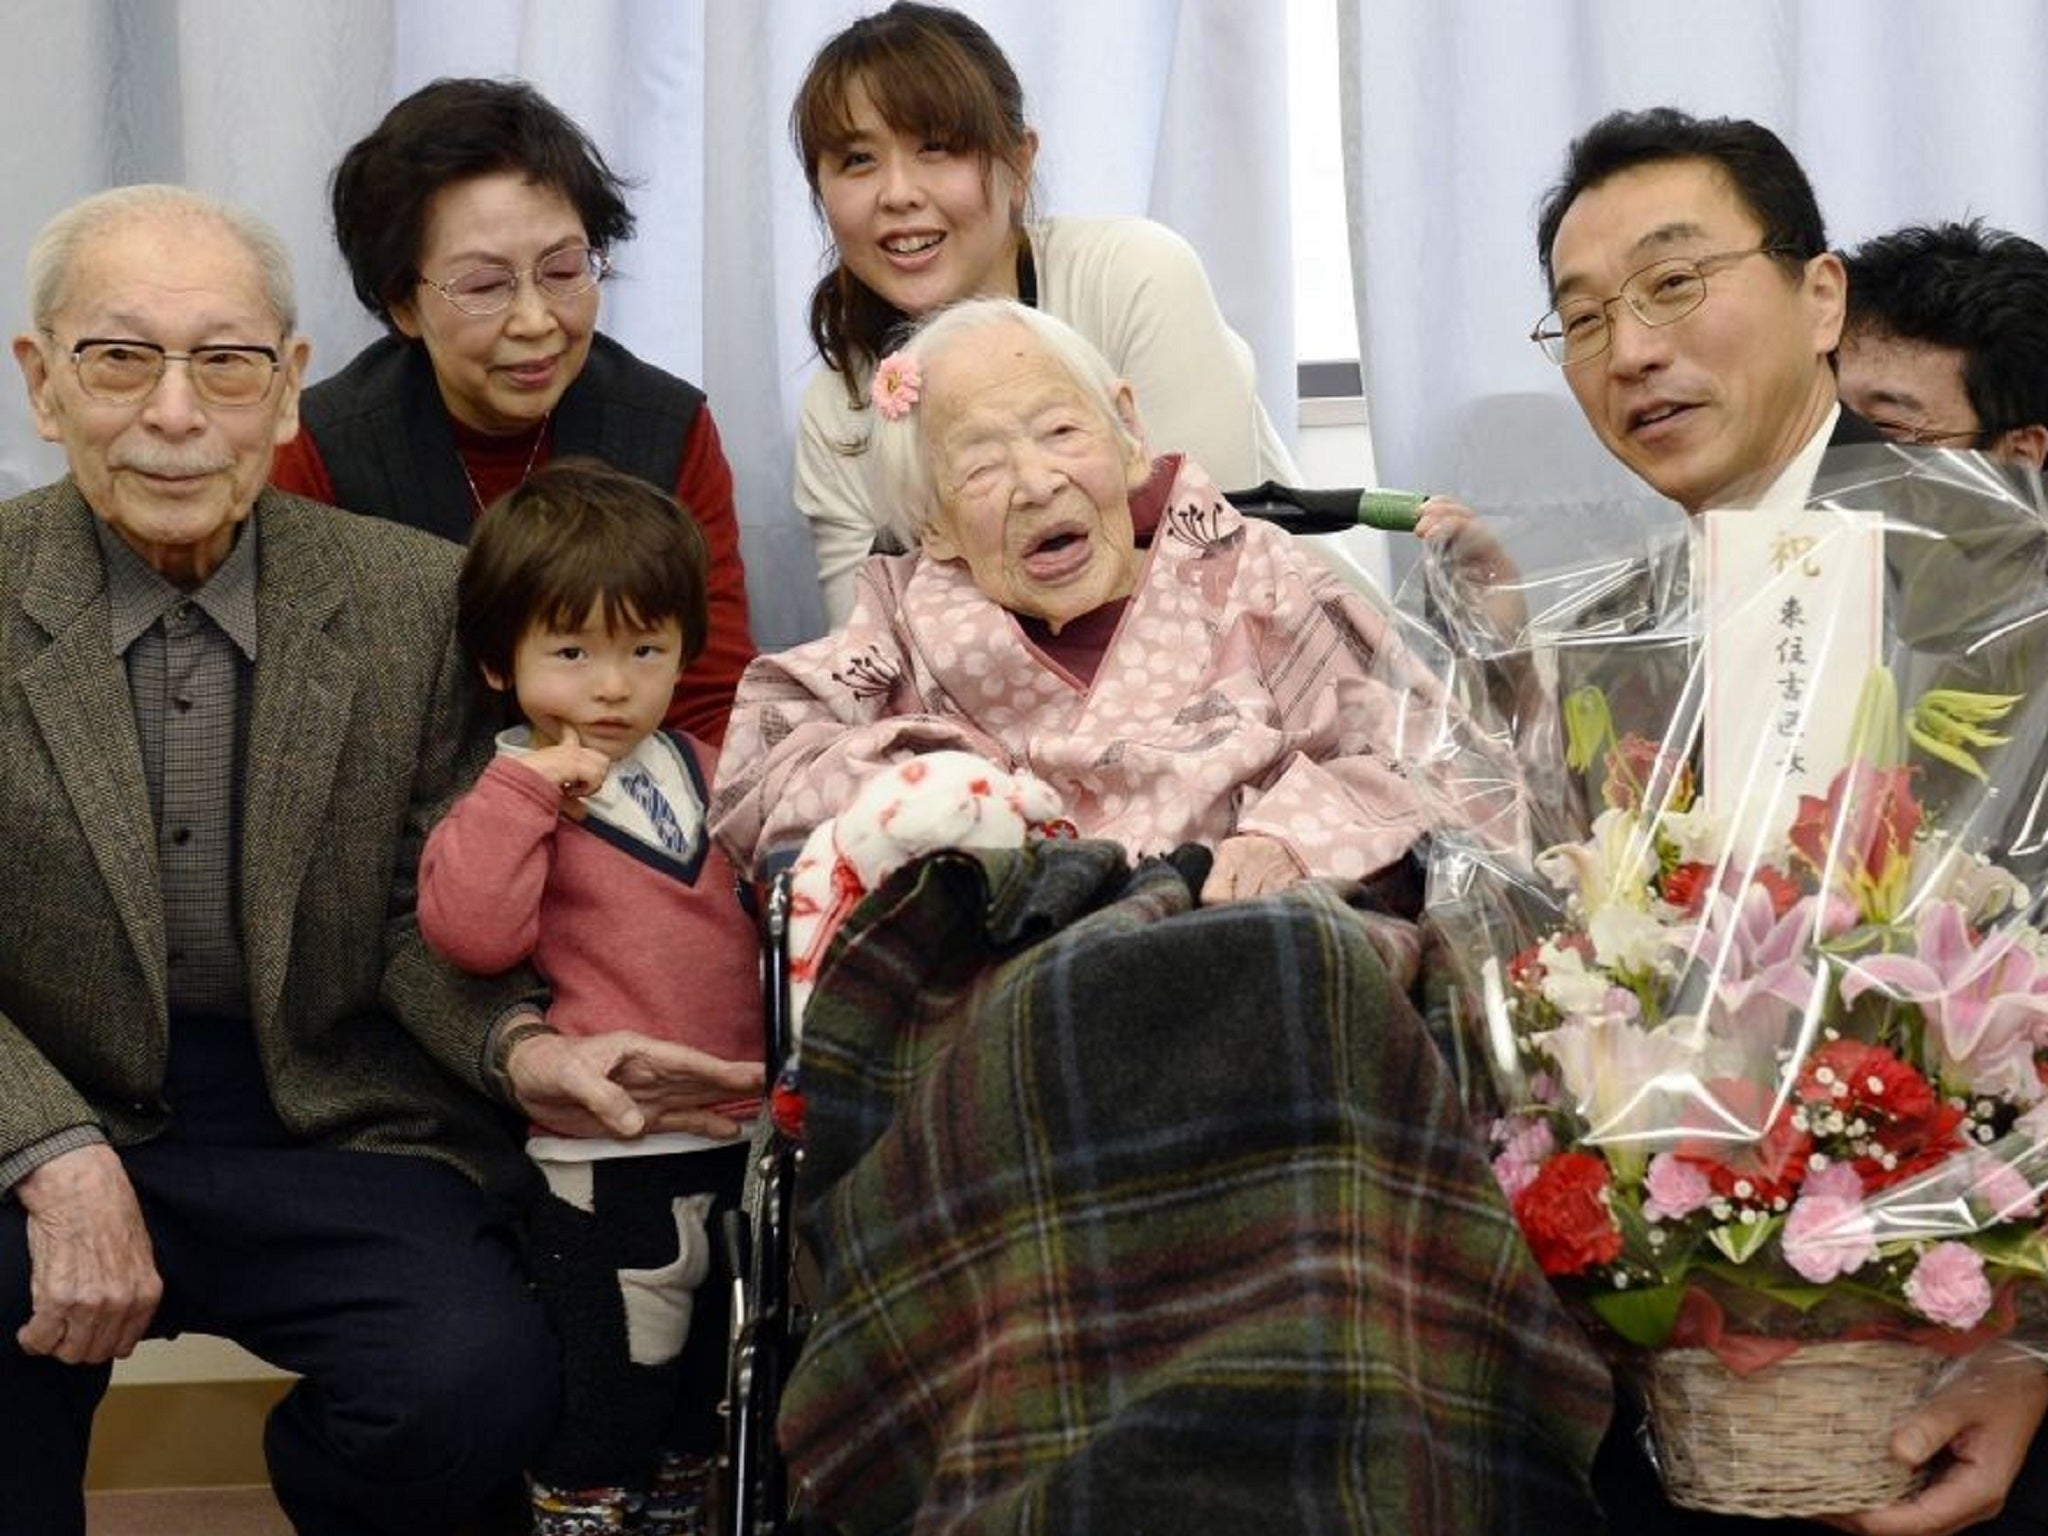 World's oldest person Misao Okawa dies at the age of 117